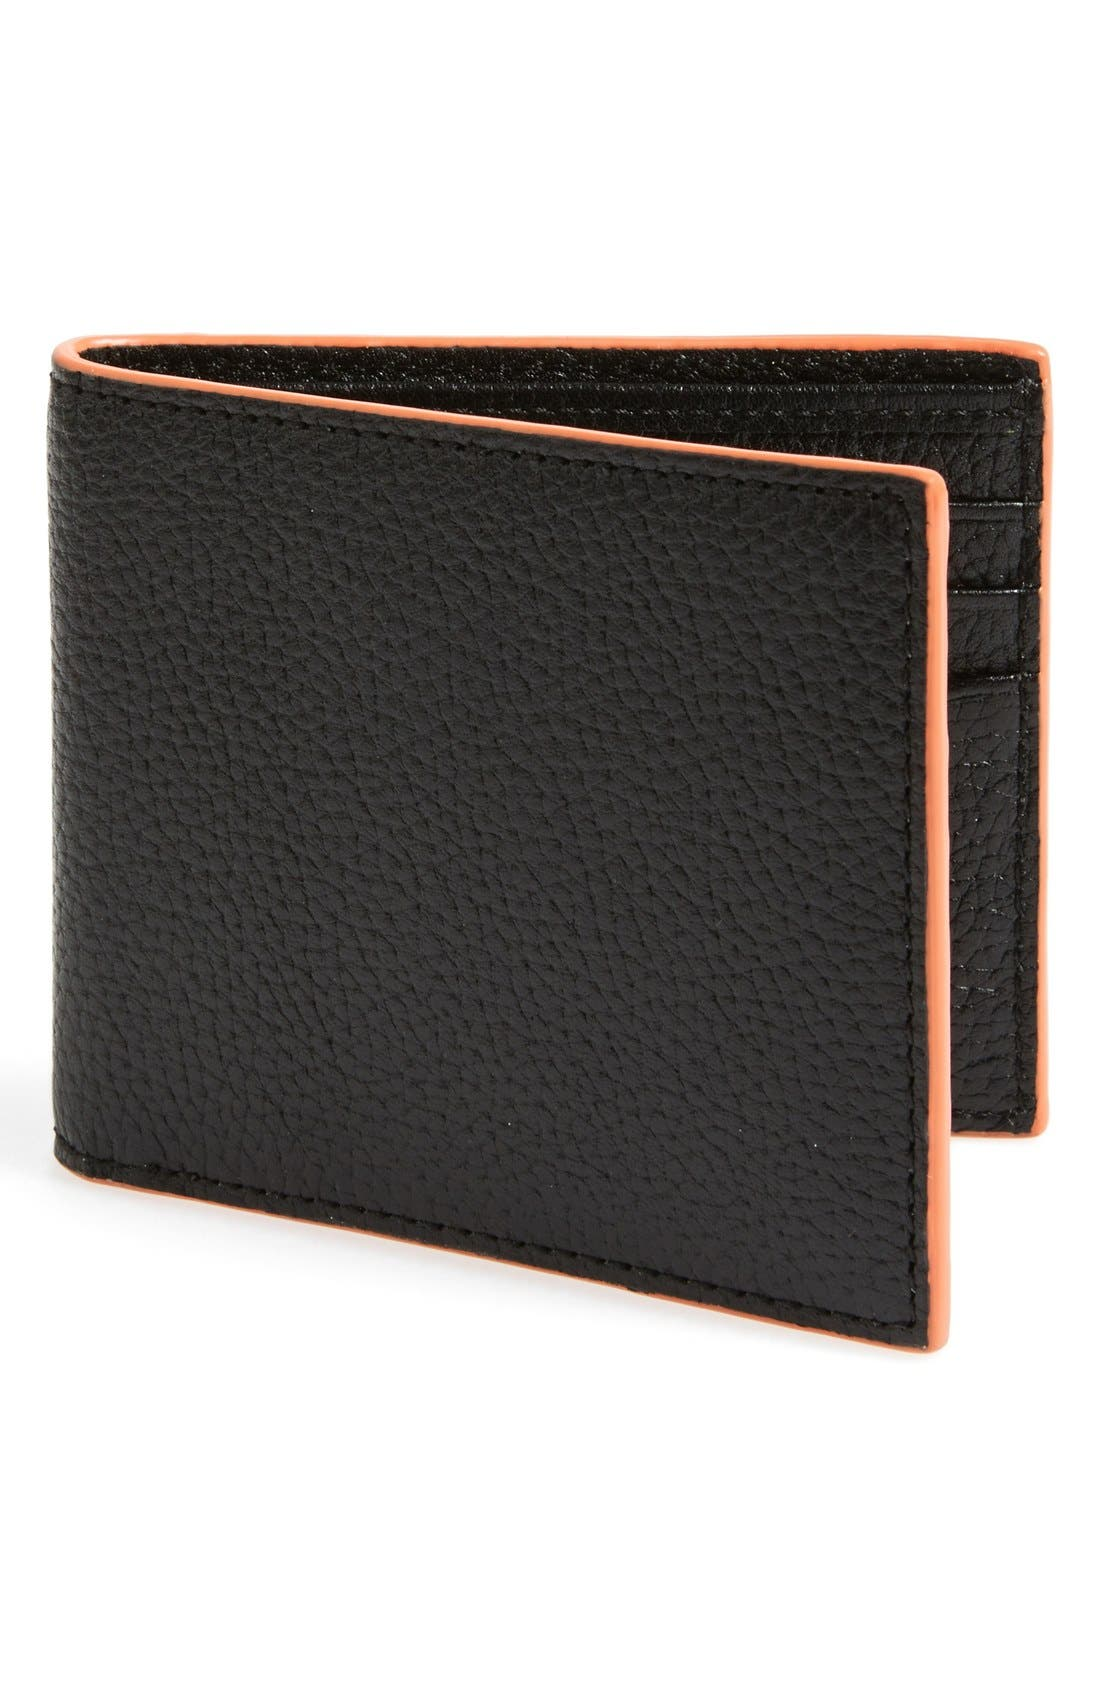 Main Image - Jack Spade 'Mason' Leather Wallet